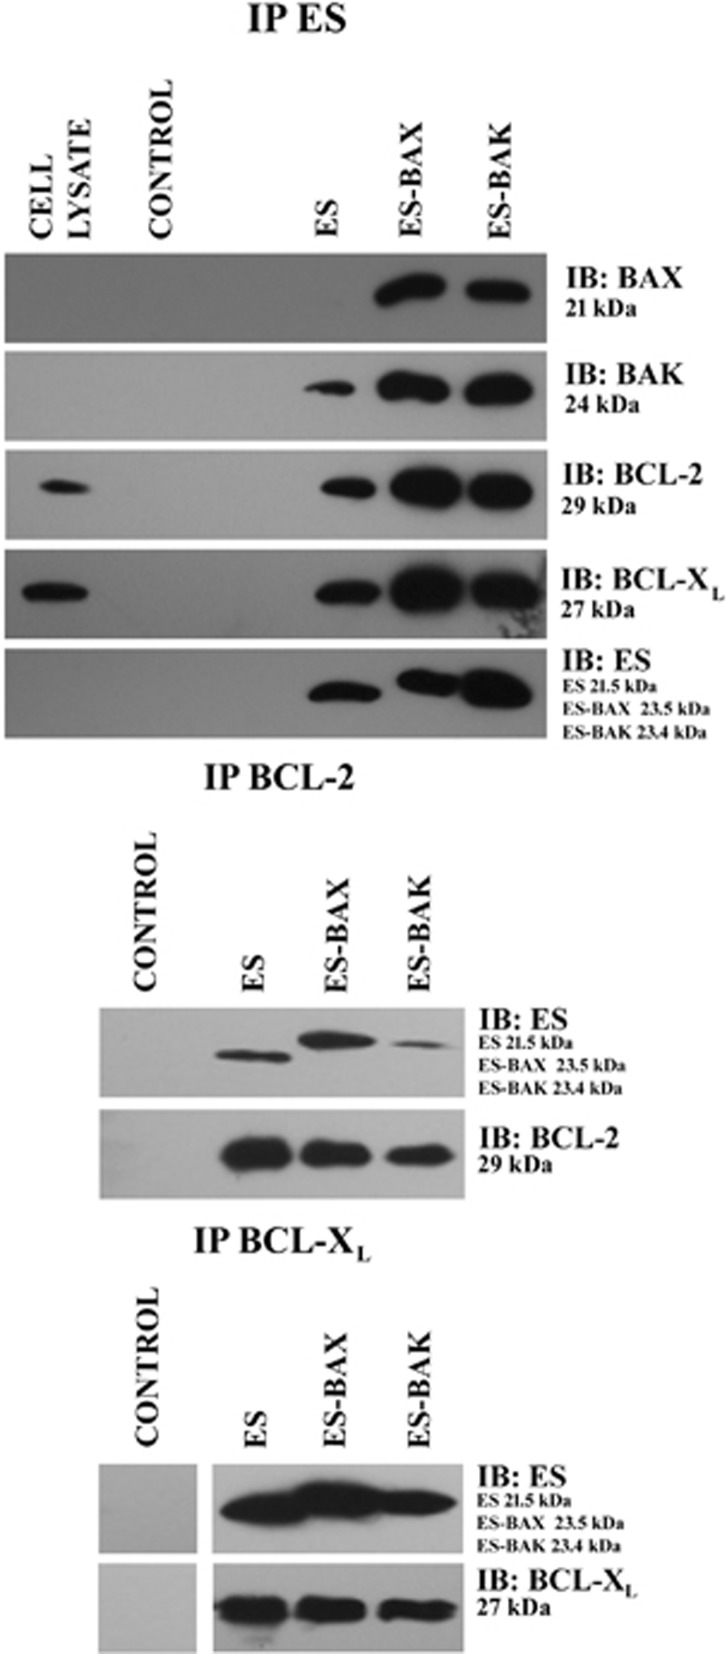 Interaction of ES, ES-BAX, and ES-BAK with members of the BCL-2 family. Whole cell lysates of 10 7 endothelial cells (HUV-EC-C) were incubated in the absence or presence of 100 μ g/ml ES, ES-BAX, or ES-BAK. The ES, ES-BAX, or ES-BAK complexes bound to cellular proteins (BCL-2, BCL-X L , BAX, or BAK) were incubated with the antibodies indicated for co-immunoprecipitation, captured on Protein G agarose beads, and subsequently subjected to SDS-PAGE. The complexes were detected by immunoblotting with the indicated antibodies. Similar blots were probed with the same antibodies that were used for co-immunoprecipitation, to ensure that equivalent amounts of proteins were present in each reaction. Cell lysates were applied at equivalent volumes. Non-related monoclonal antibodies were used to control co-immunoprecipitation